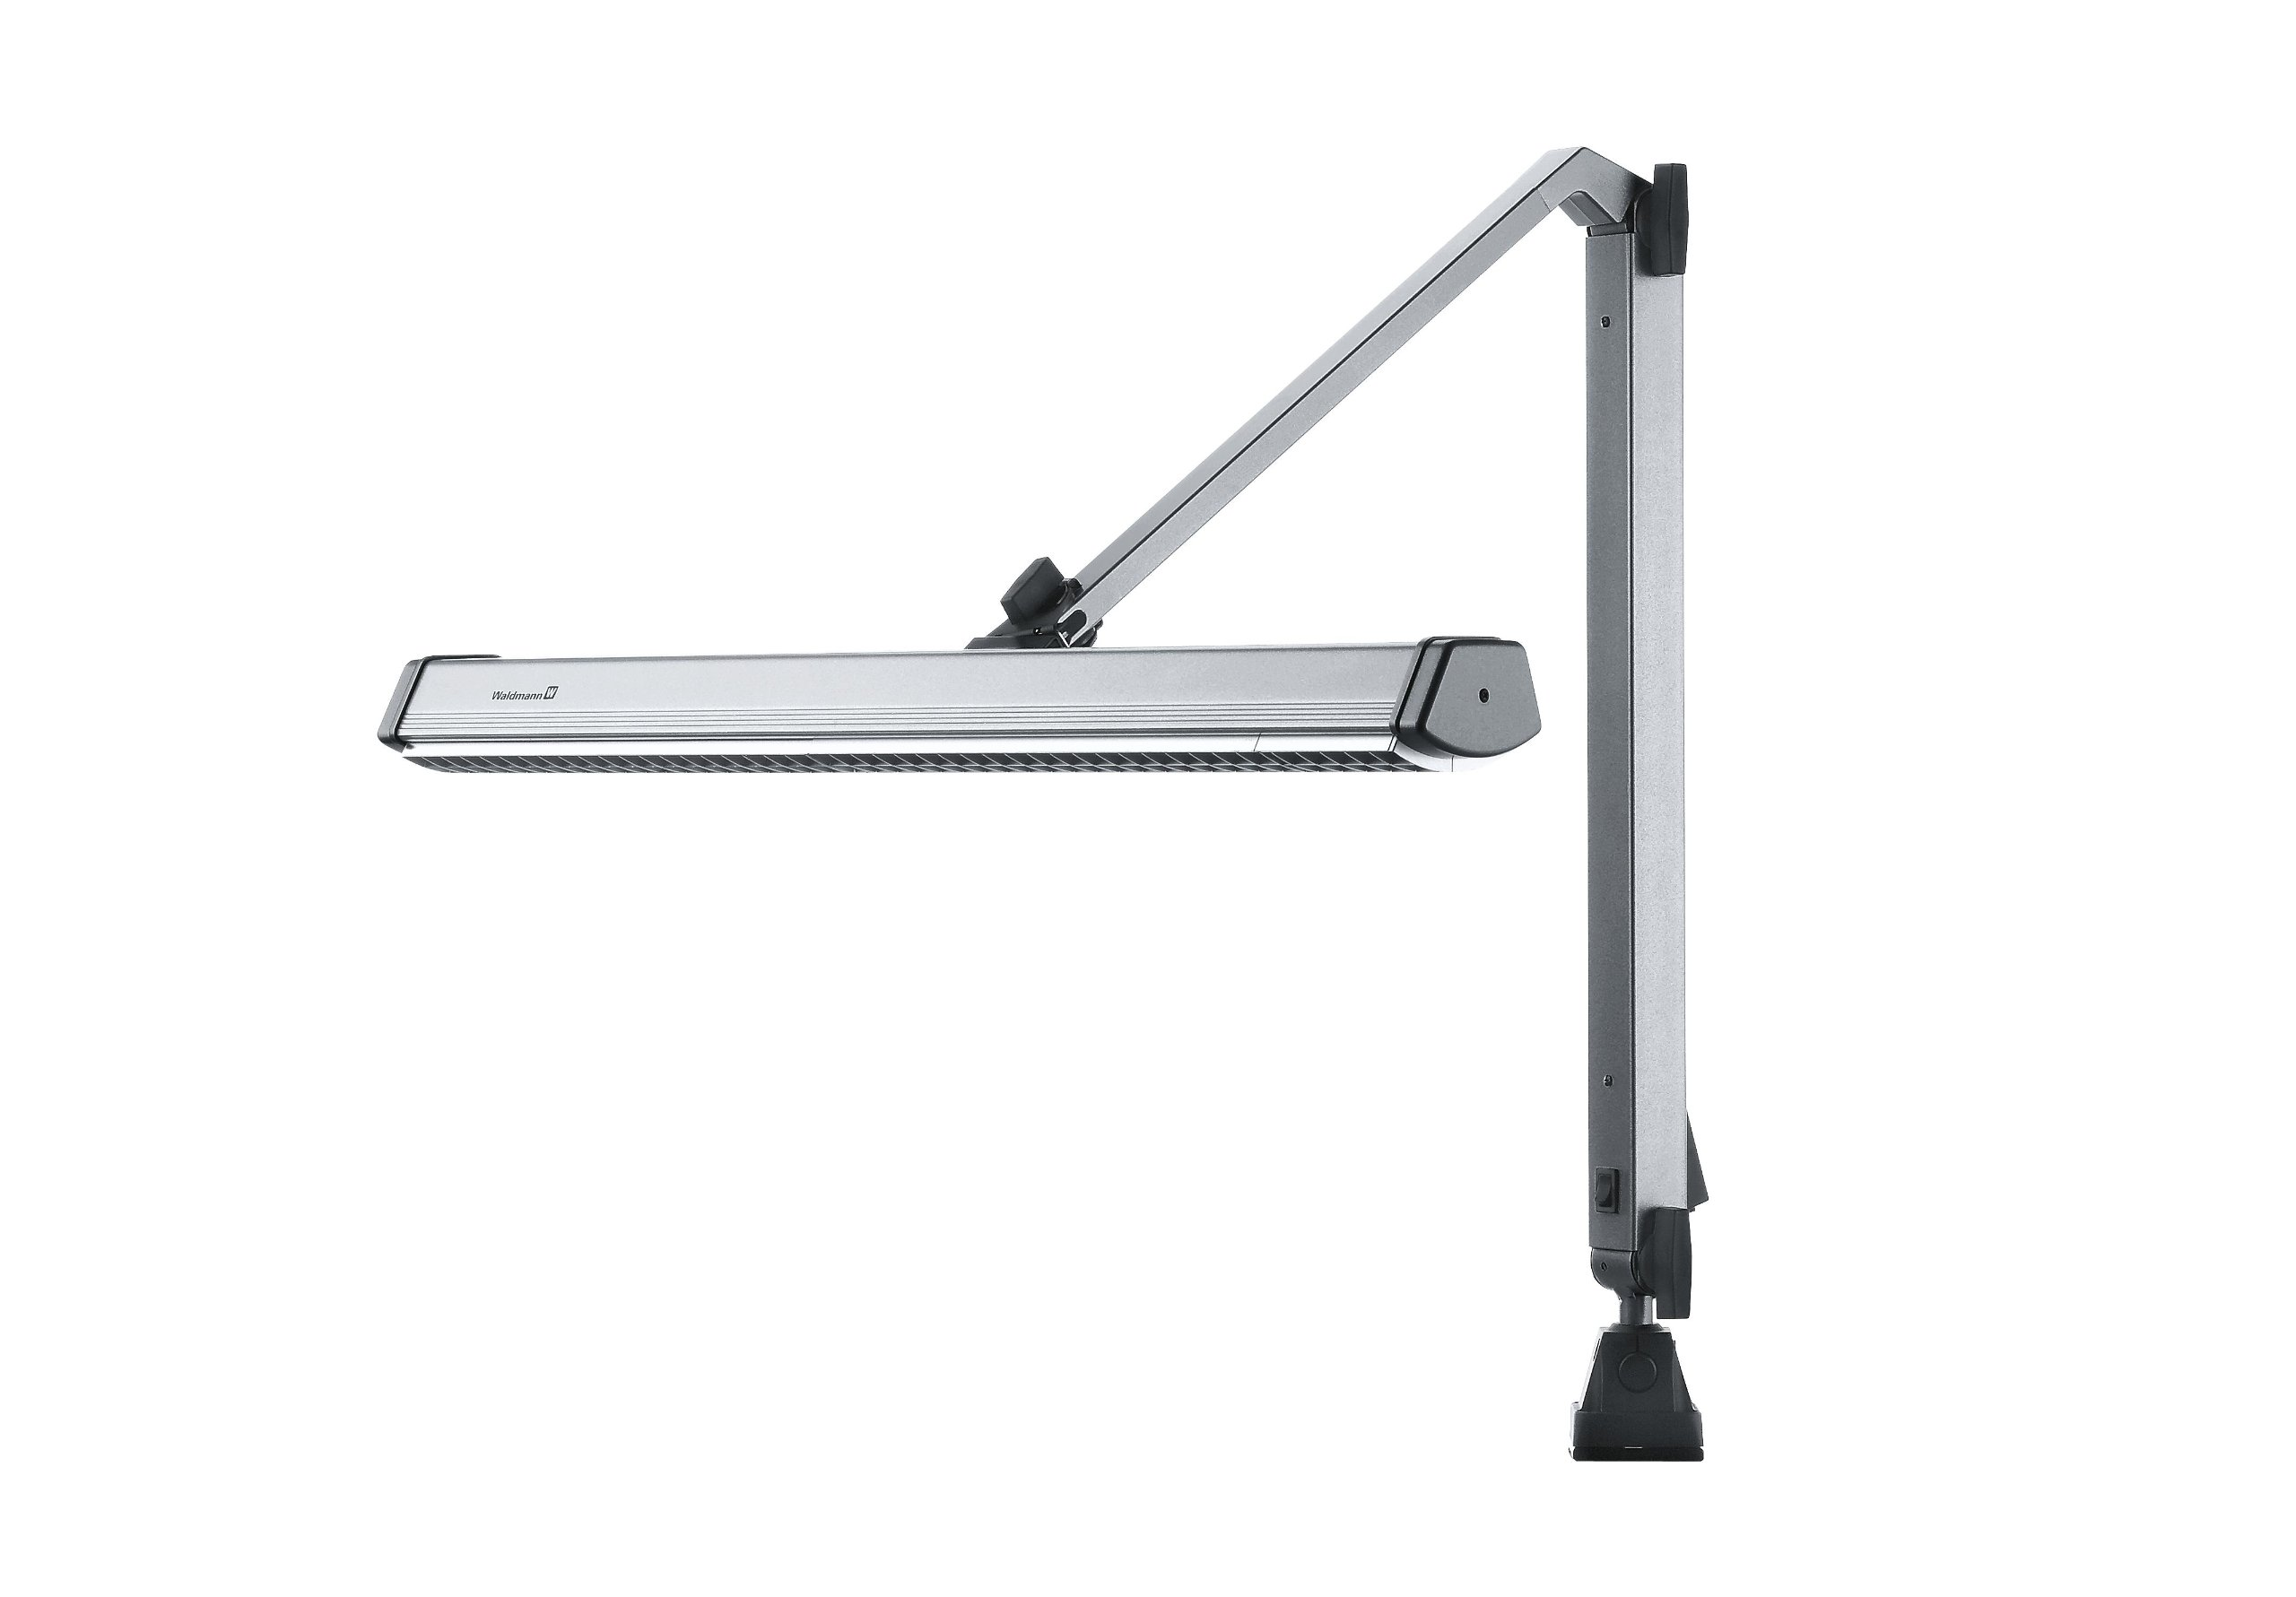 Universal Industrial Task Light, Center Arm, Aluminum Steel, Light Gray, 36'' Reach, 1 x 55W CFL Lamping, 120V Voltage